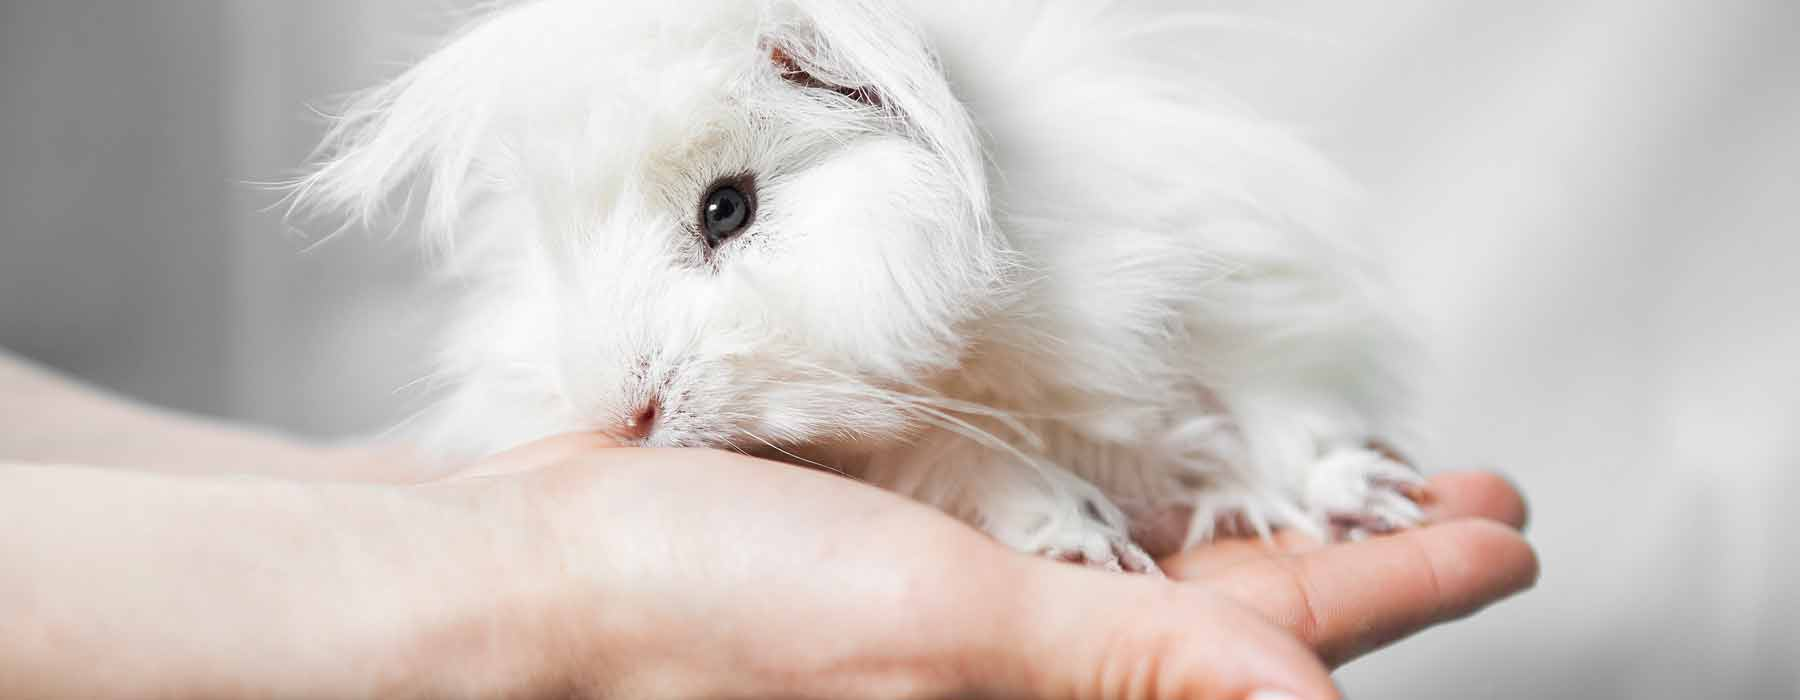 white baby guinea pig sitting on a hand